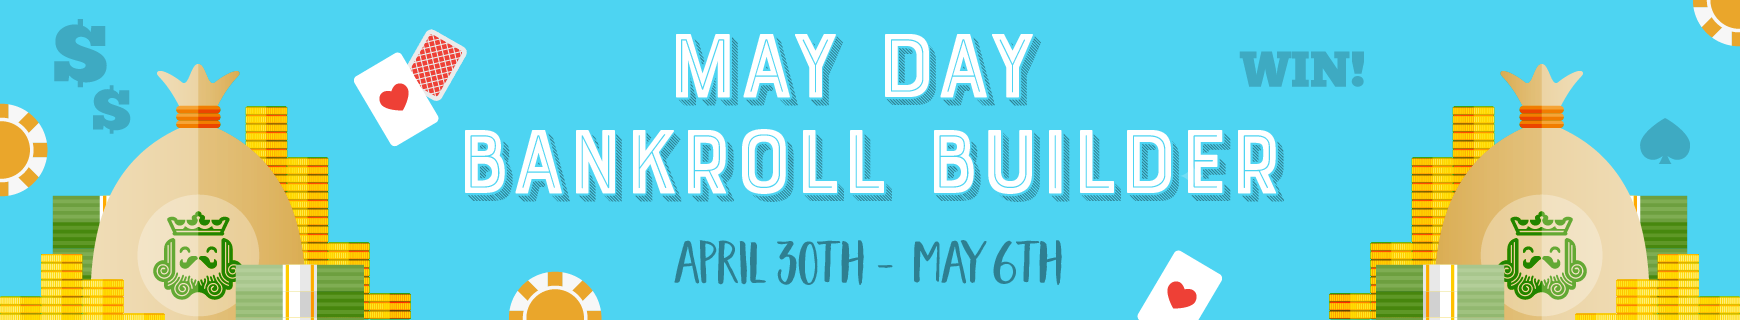 May day bankroll builder %28870 x 160%29 2x